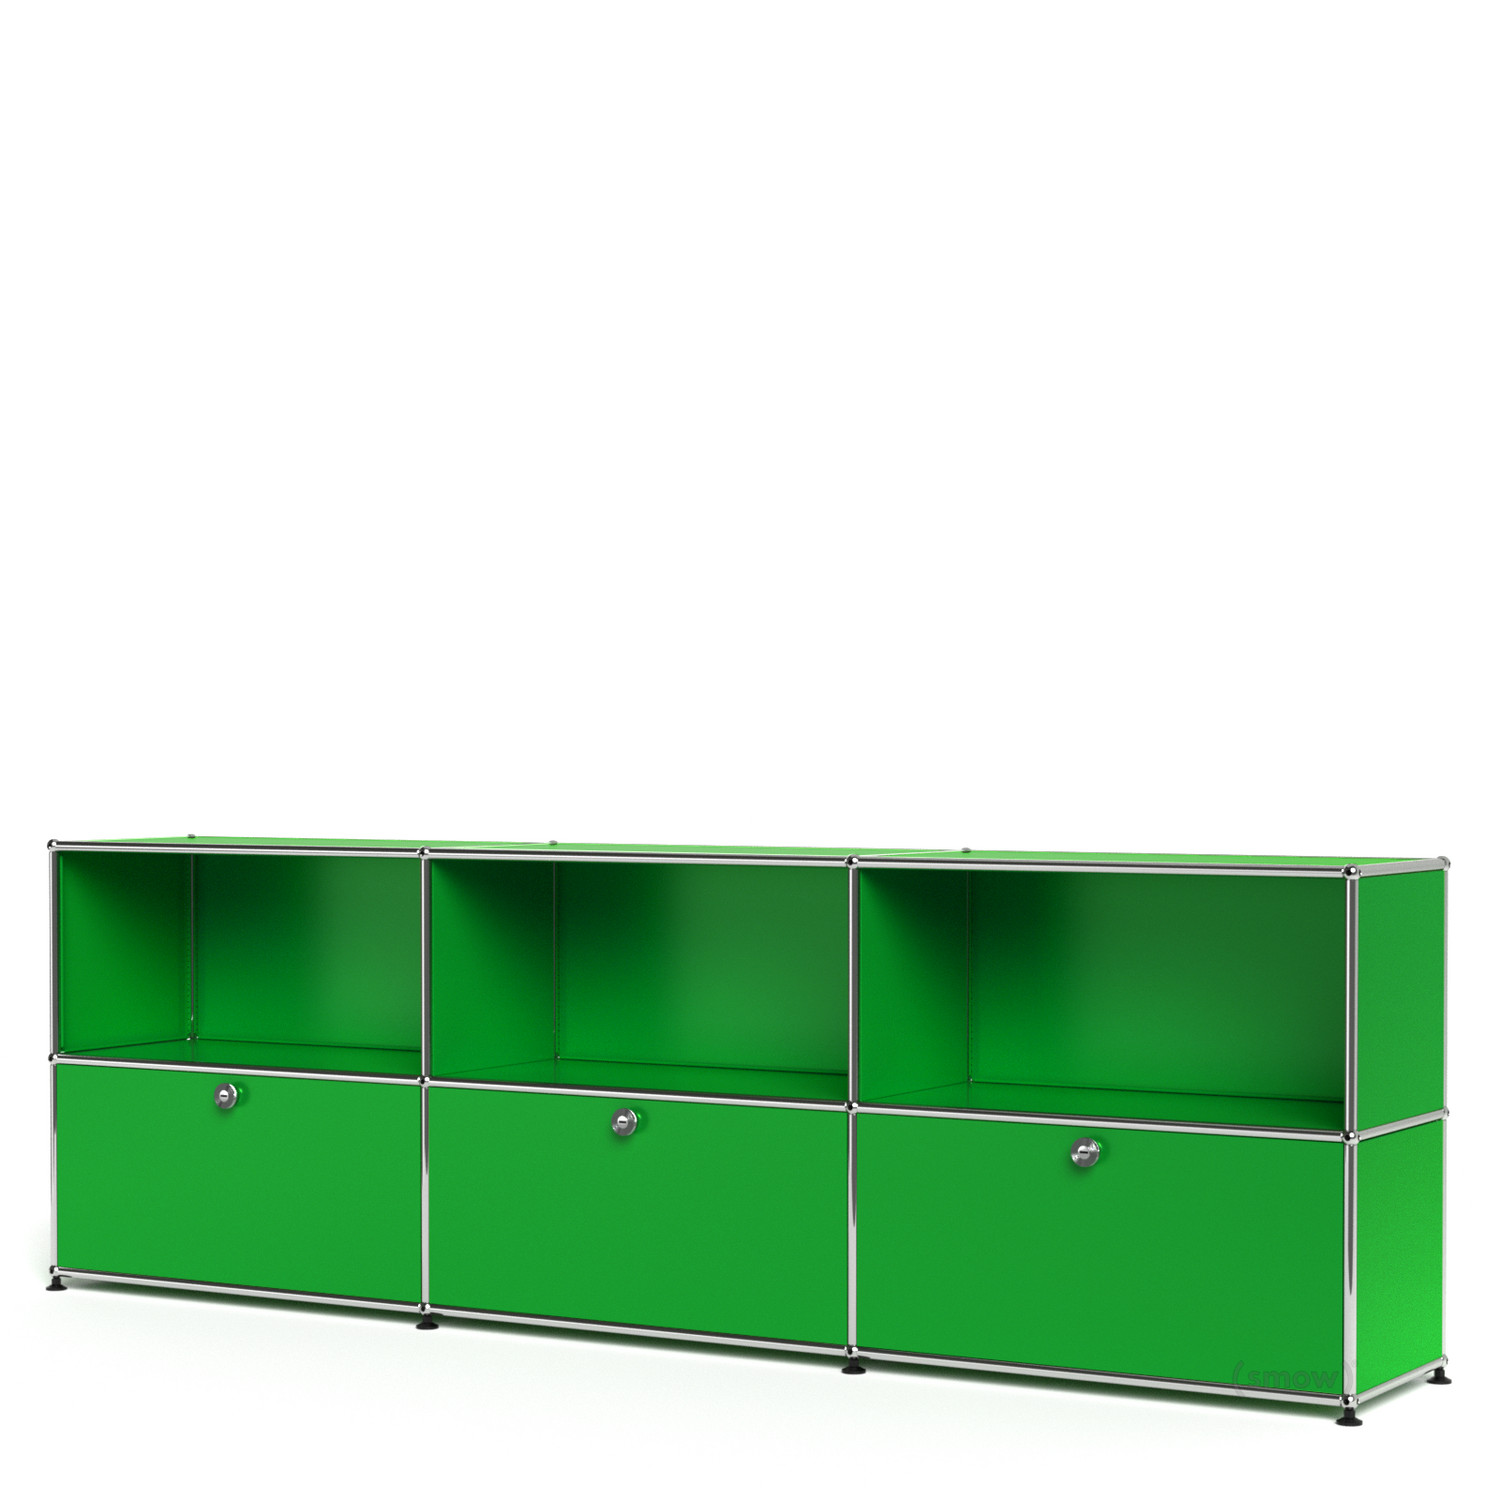 usm haller sideboard xl individualisierbar usm gr n offen mit 3 klappen von fritz haller. Black Bedroom Furniture Sets. Home Design Ideas